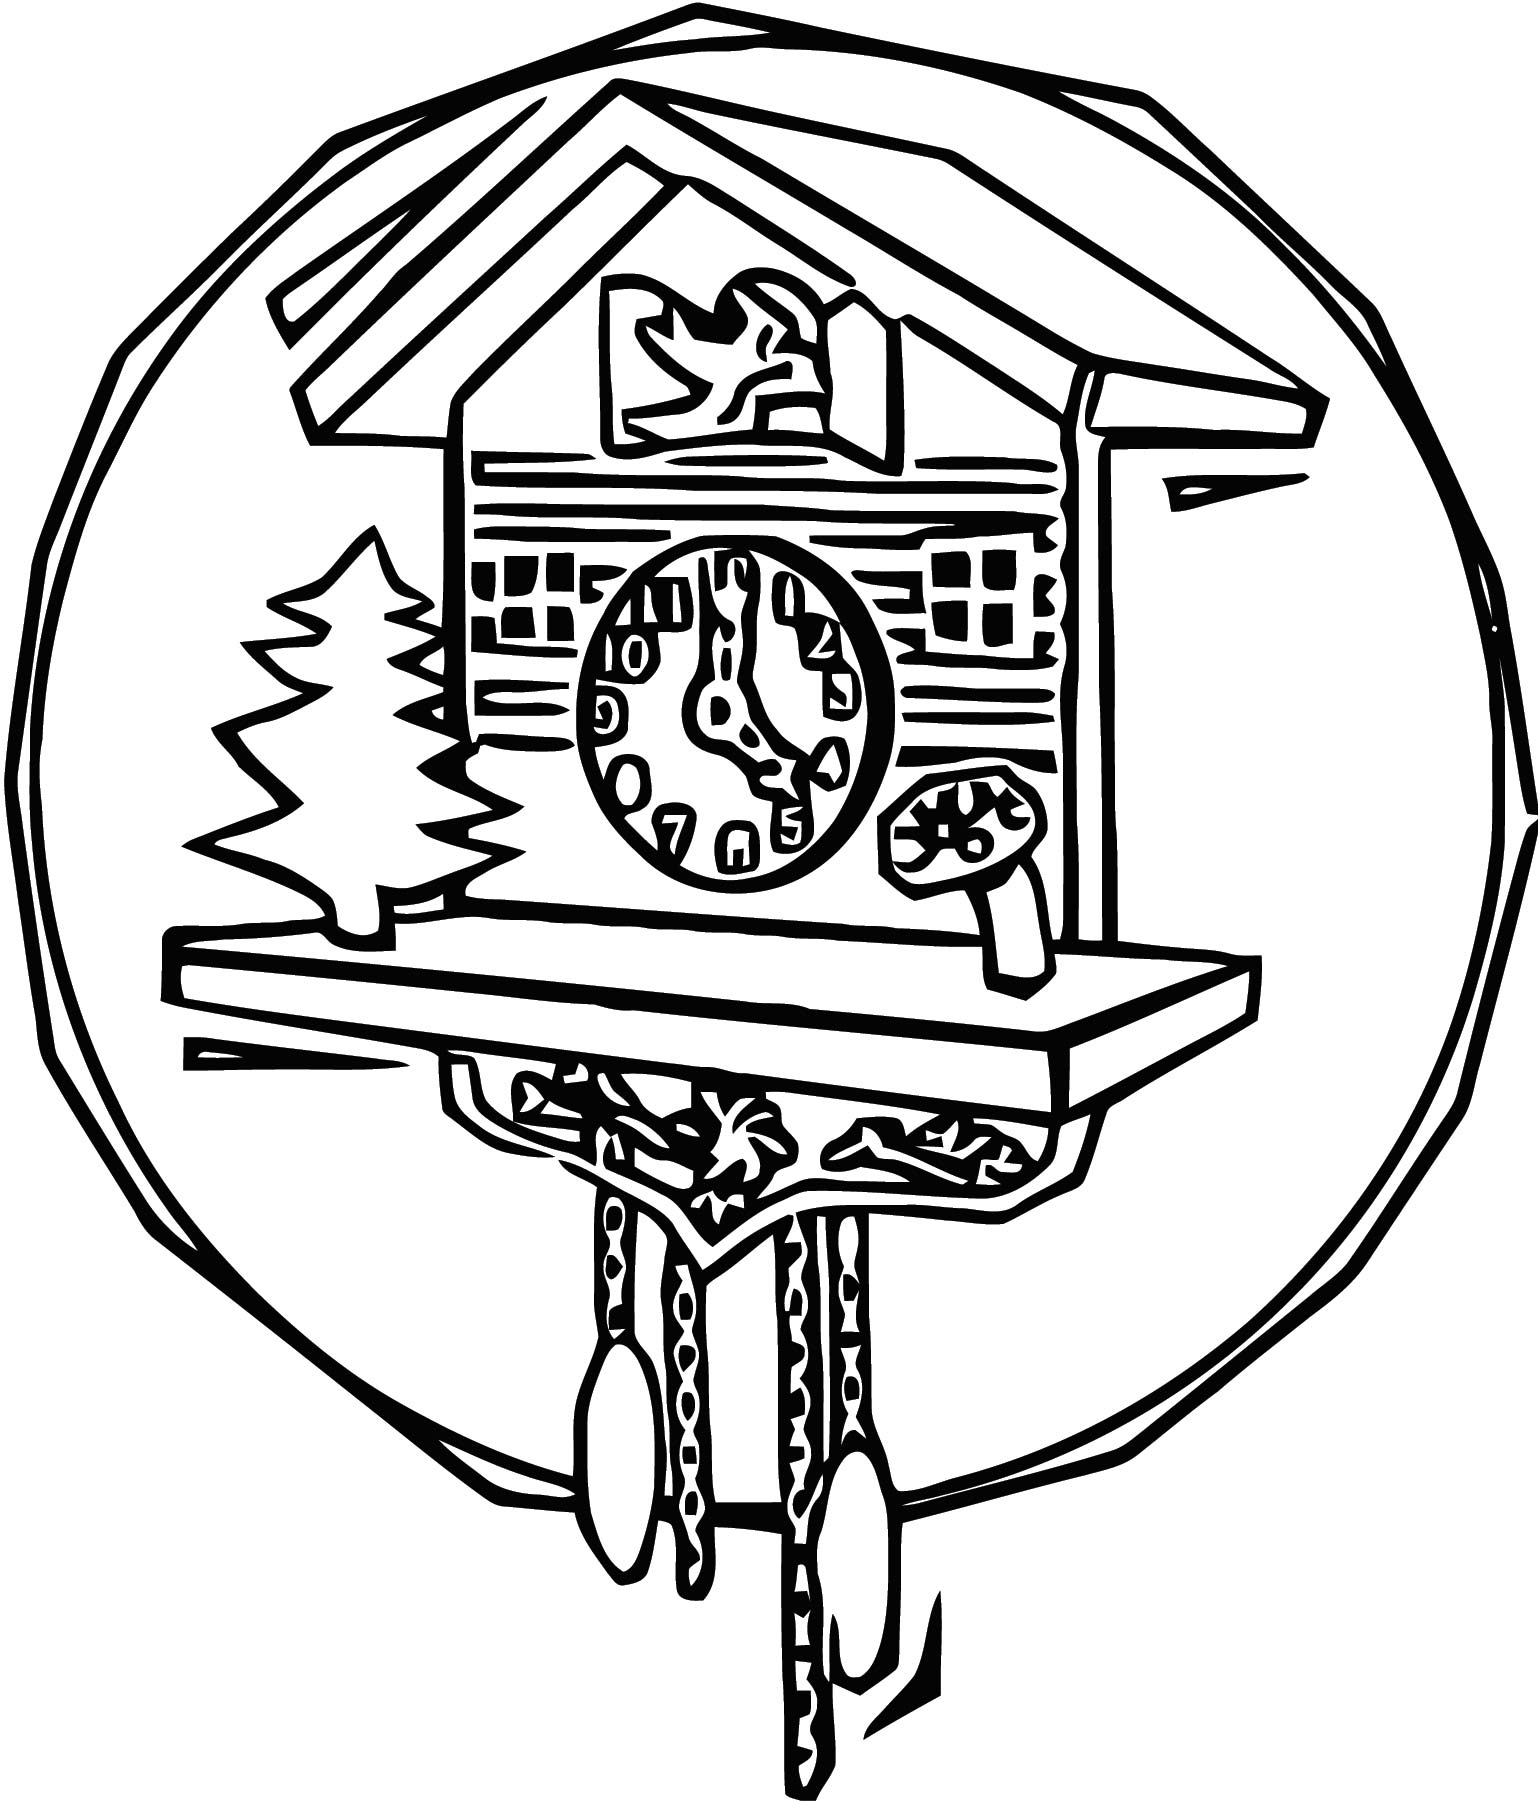 Clock Cuckoo Free Printable 1 Cartoonized Free Printable Coloring Page